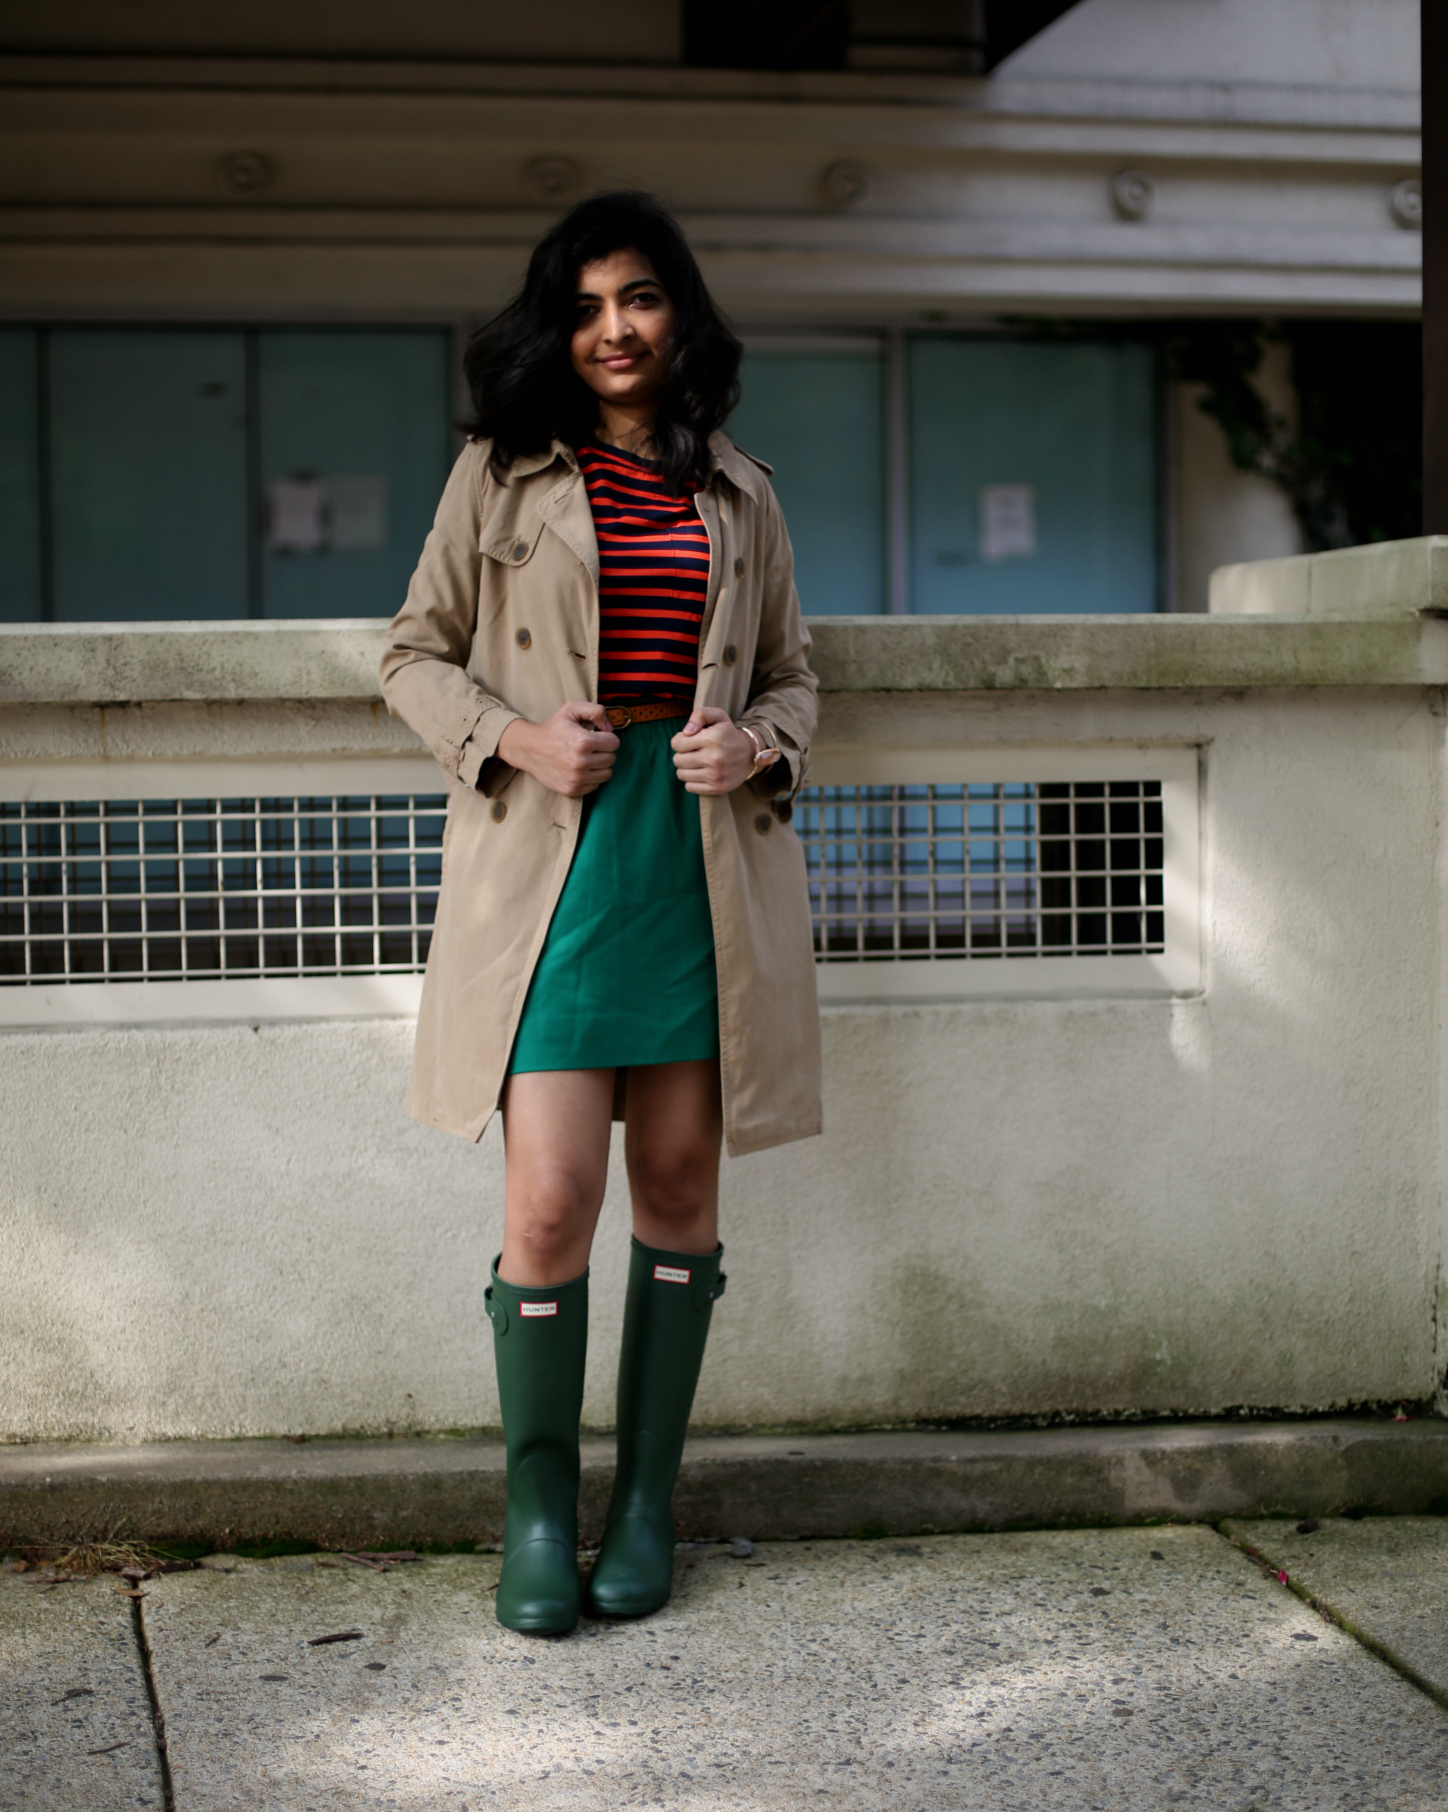 rainy-day-outfit-ideas-dl-3